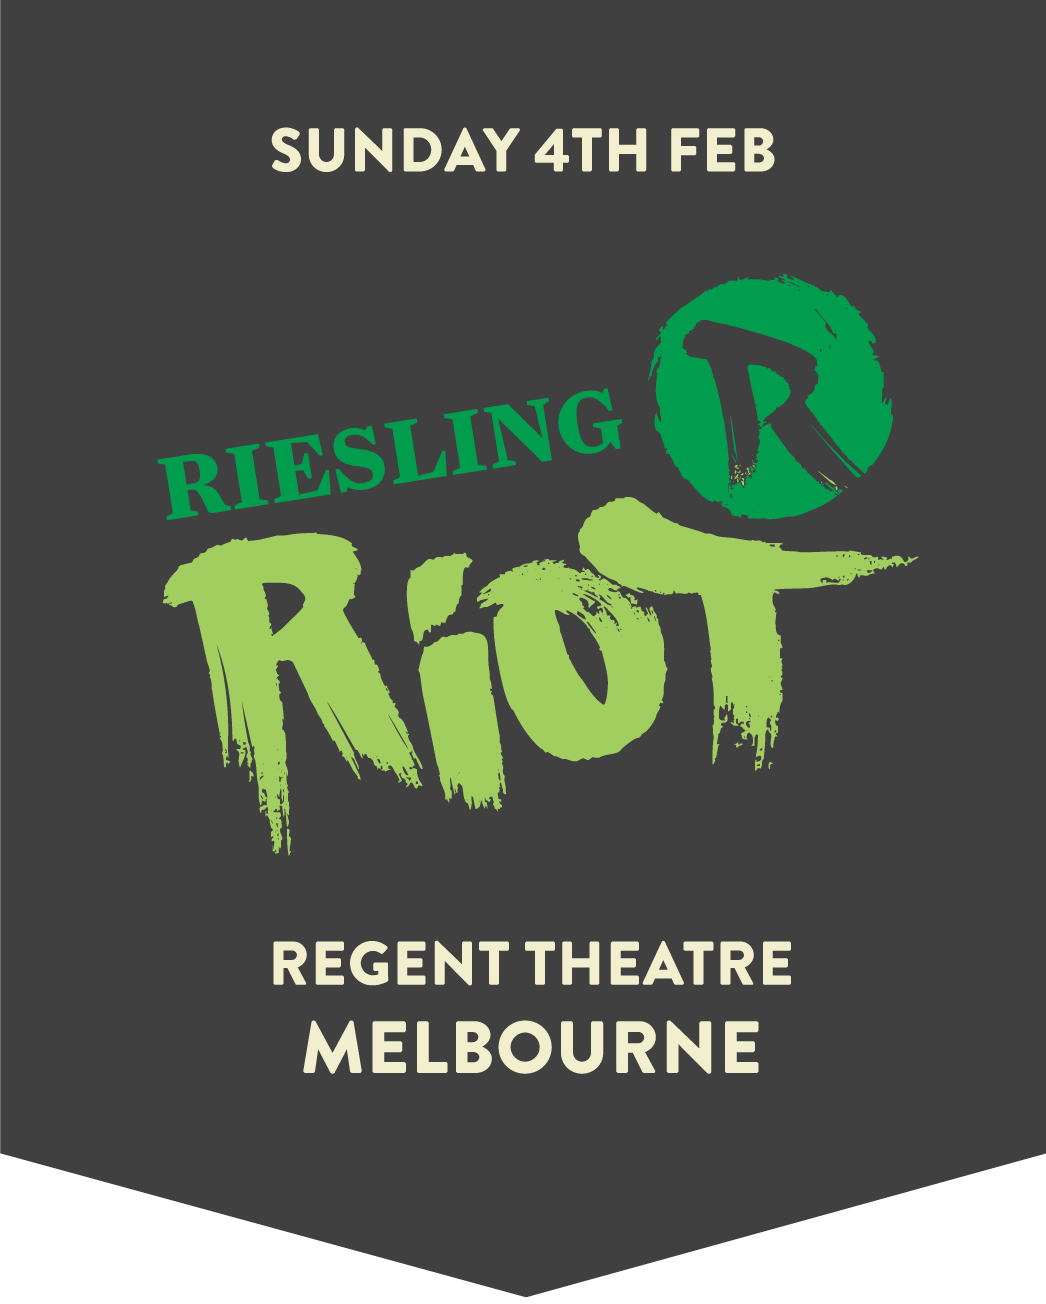 events-rr-melb